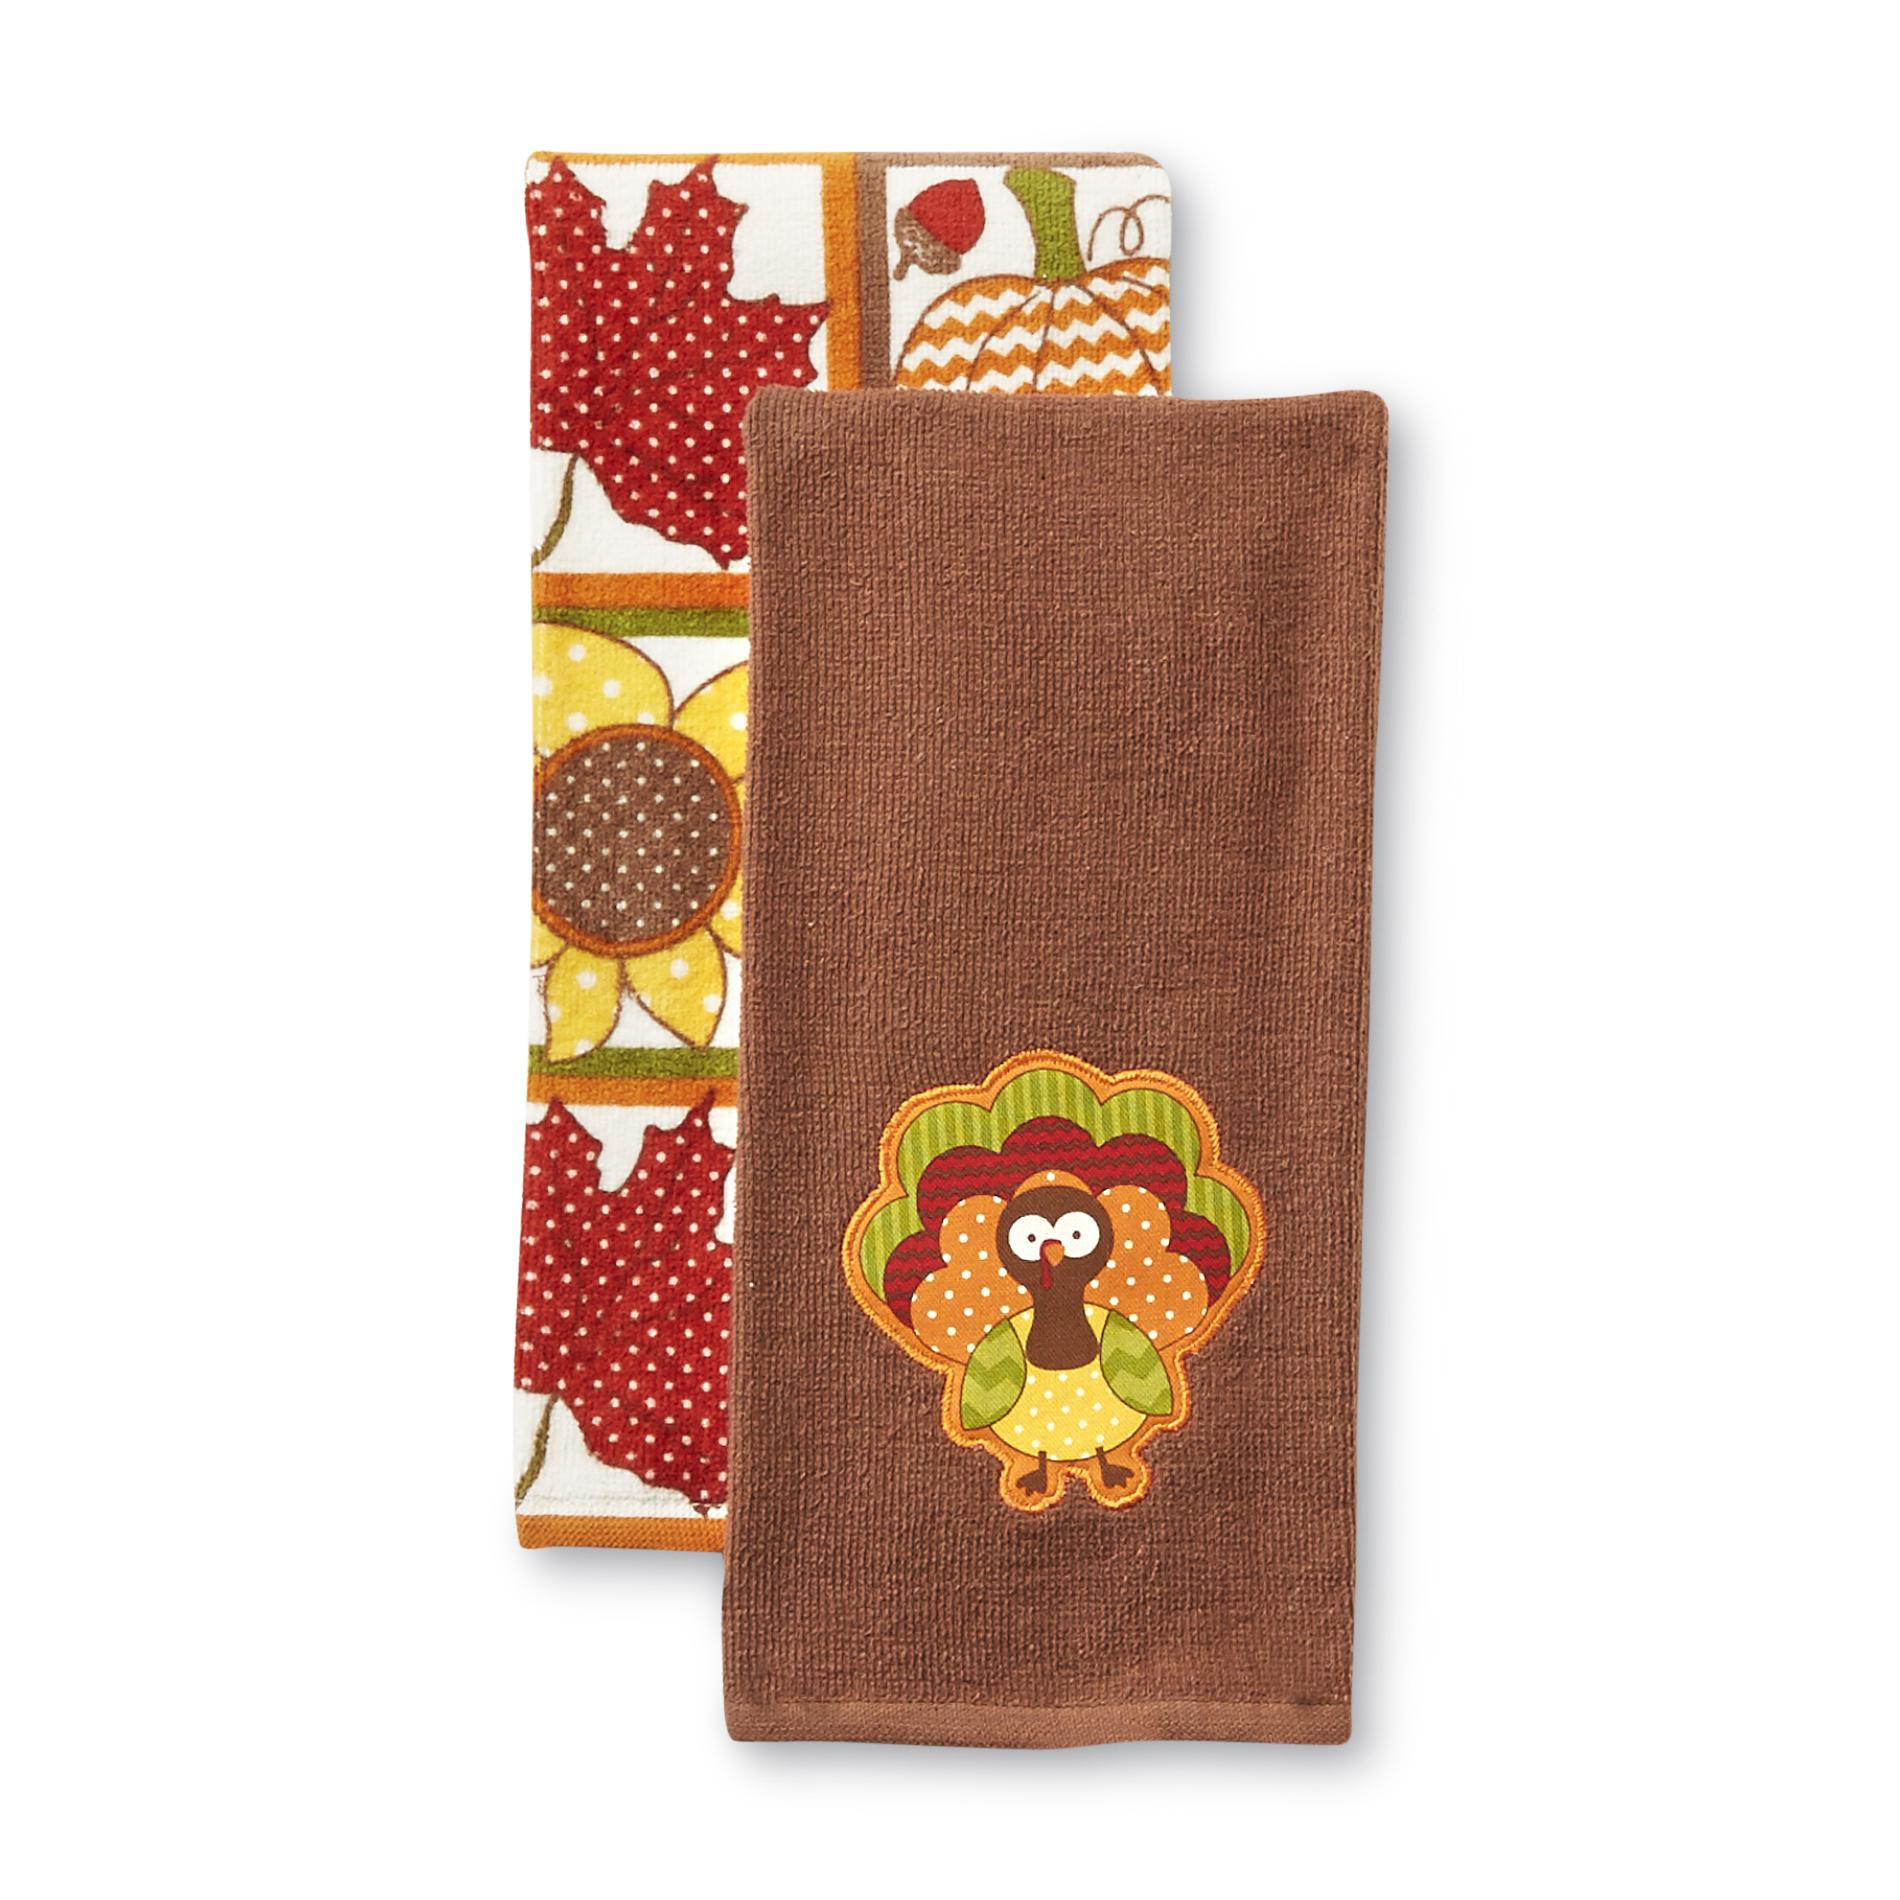 Thanksgiving Kitchen Towels  Sandra by Sandra Lee 2 Pack Holiday Kitchen Towels